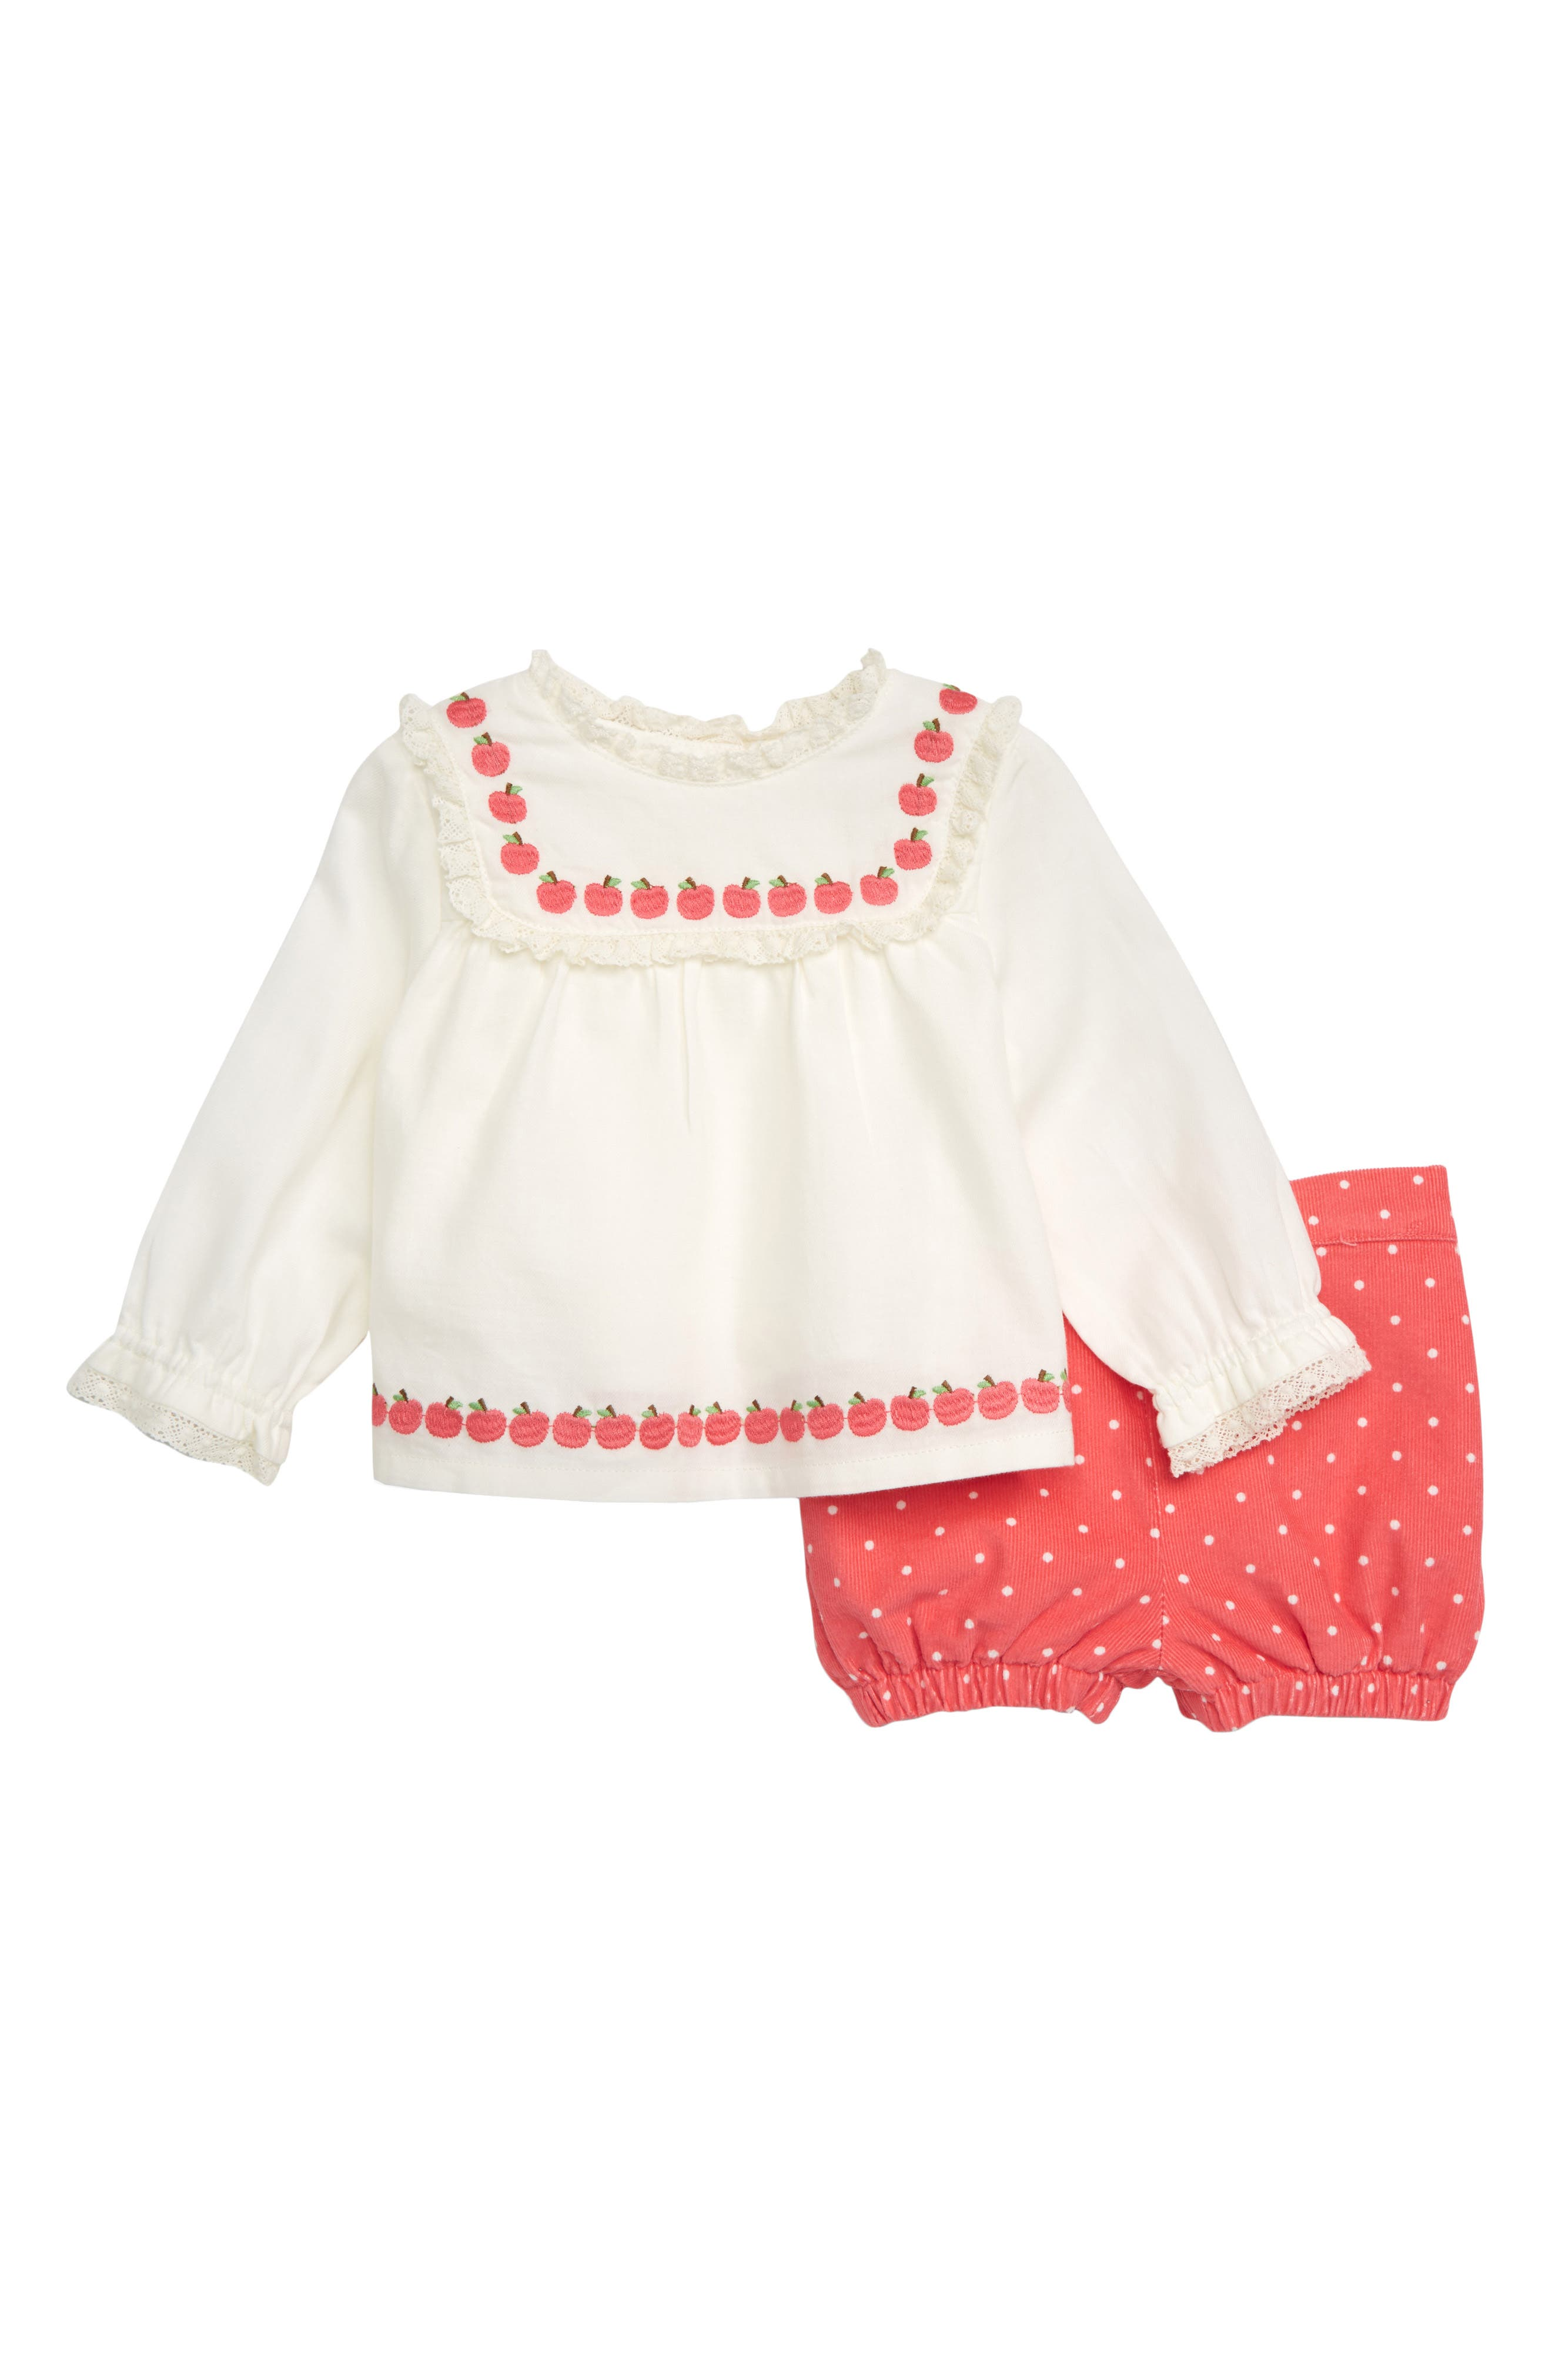 Toddler Girls Mini Boden Pretty Woven Top  Bloomers Set